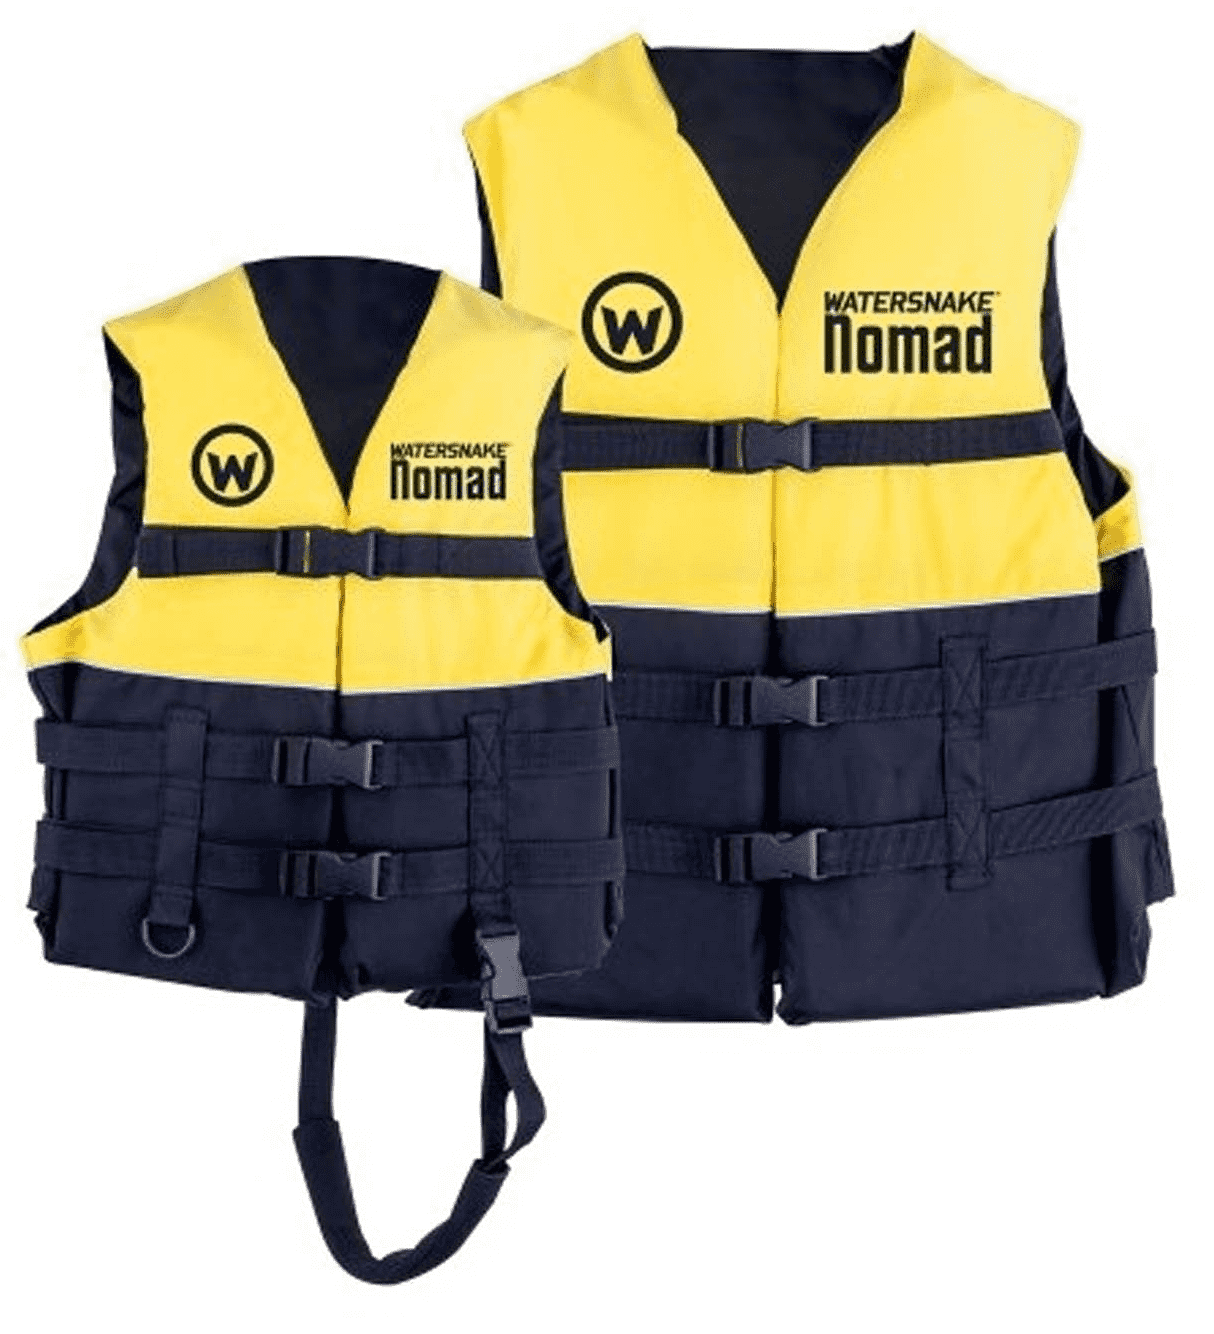 Watersnake Nomad PFD Level 50 Yellow Life Jacket Child